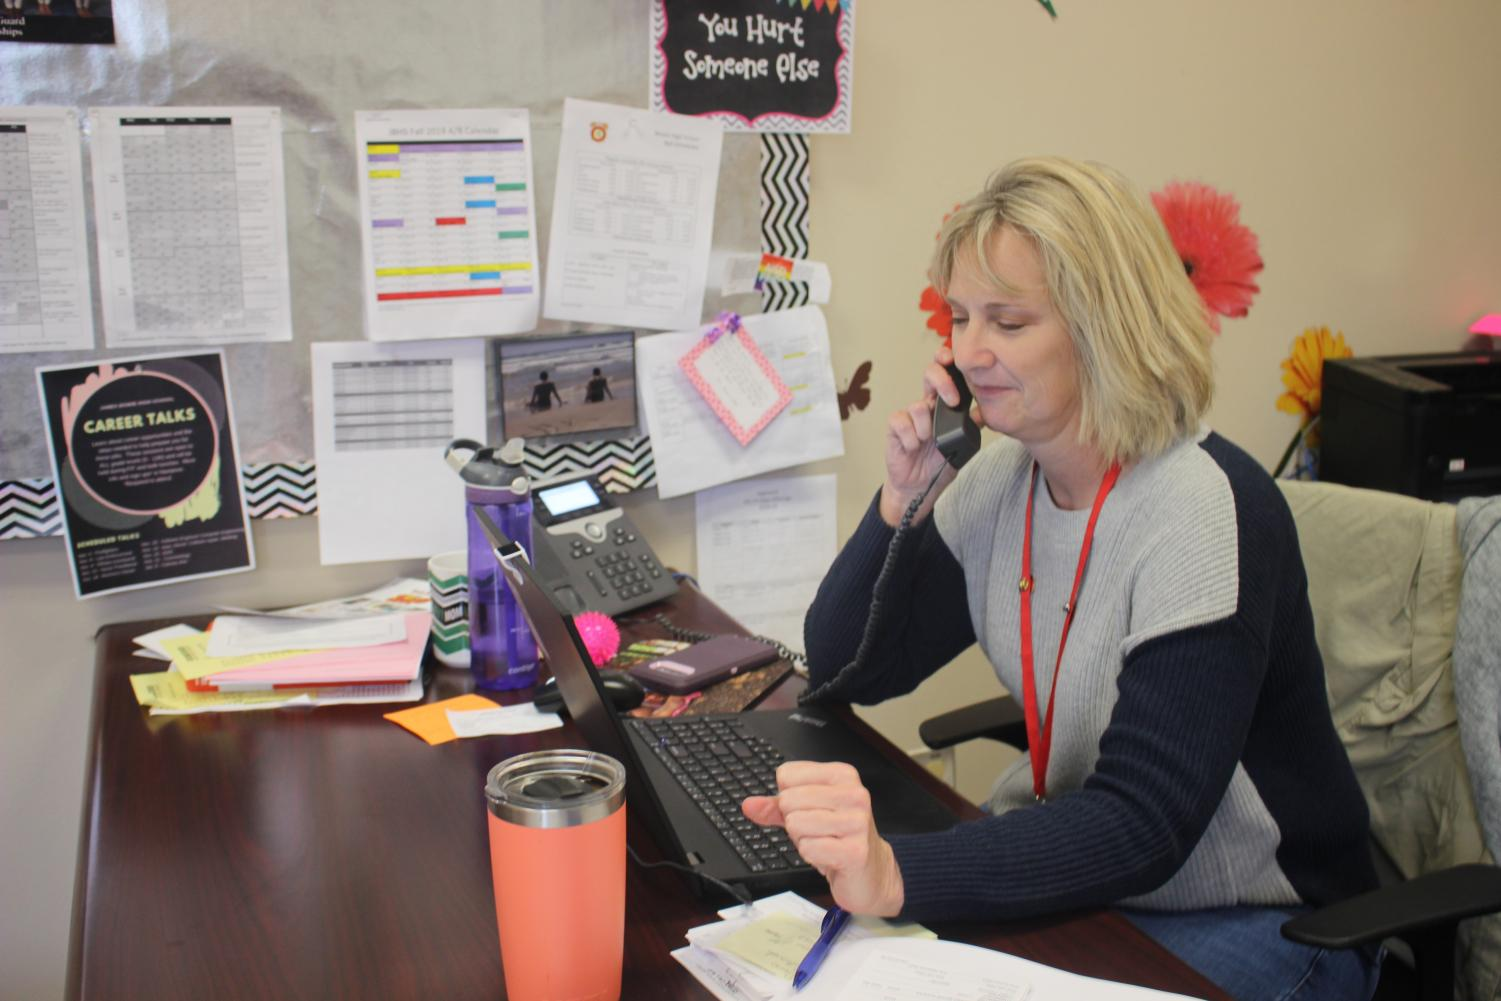 This year is Kim Gilbert's second year working at Bowie. She is one of the many counselors that helps students with the last names McE-P. Gilbert helps out students with any and every problem they have, from grades to personal problems.